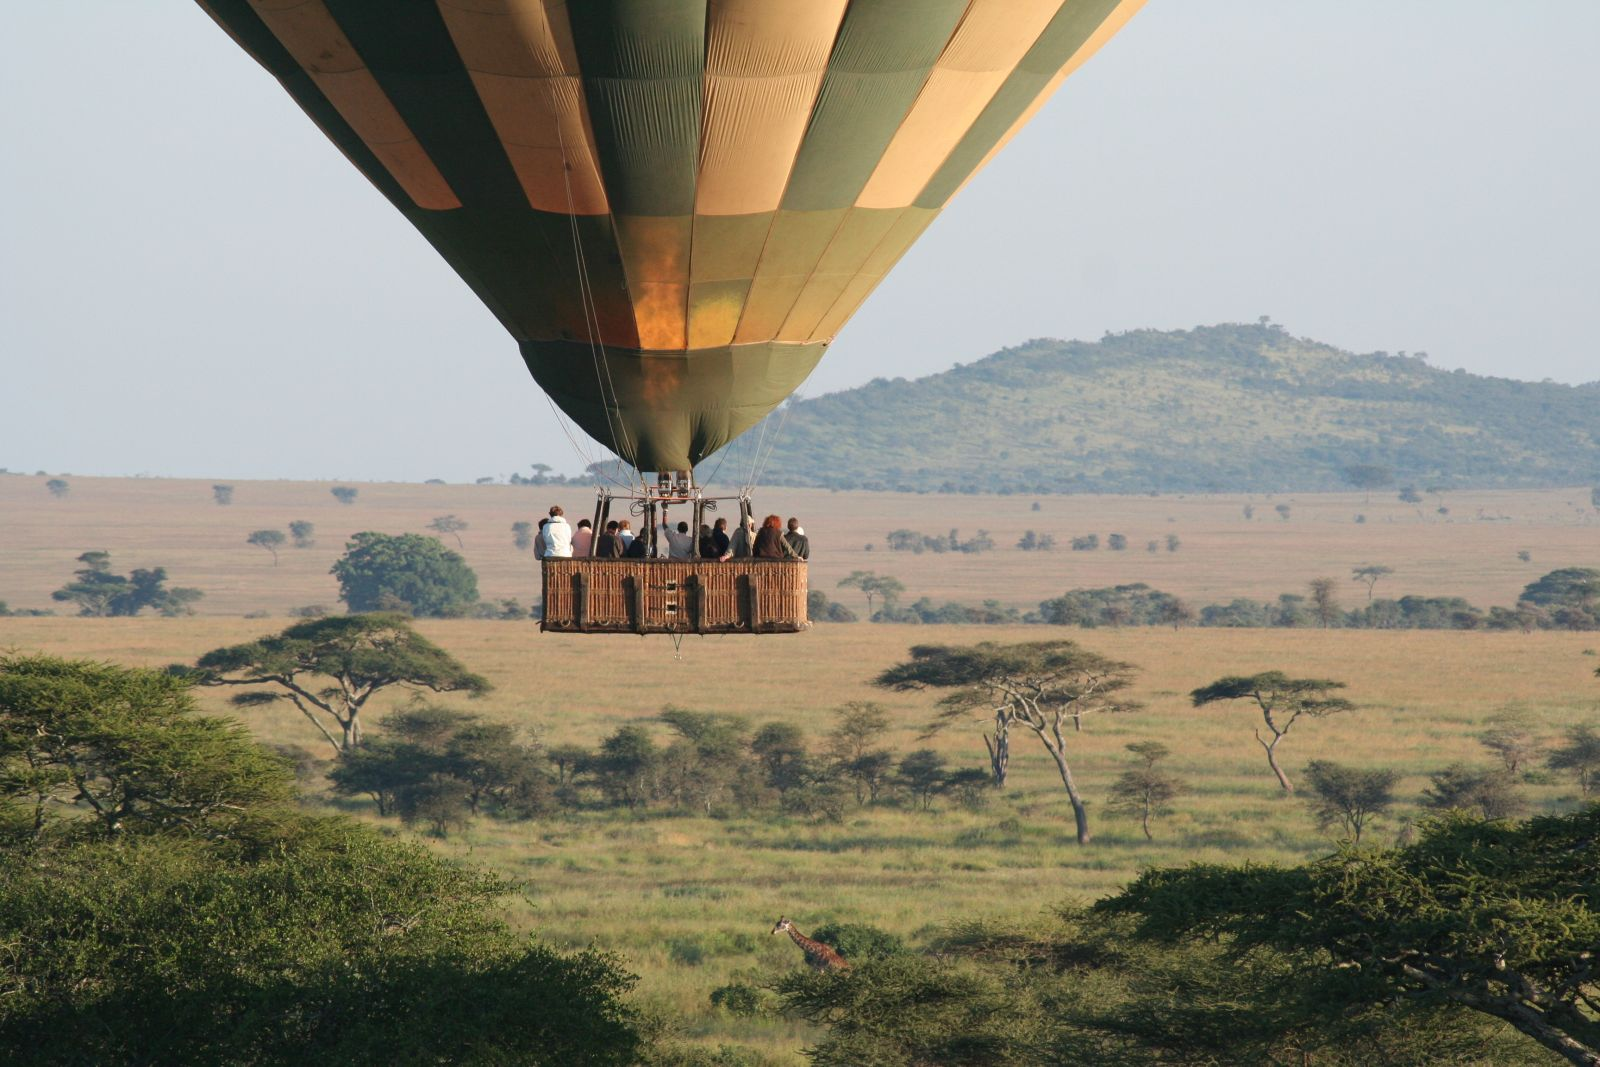 Balloon on safari